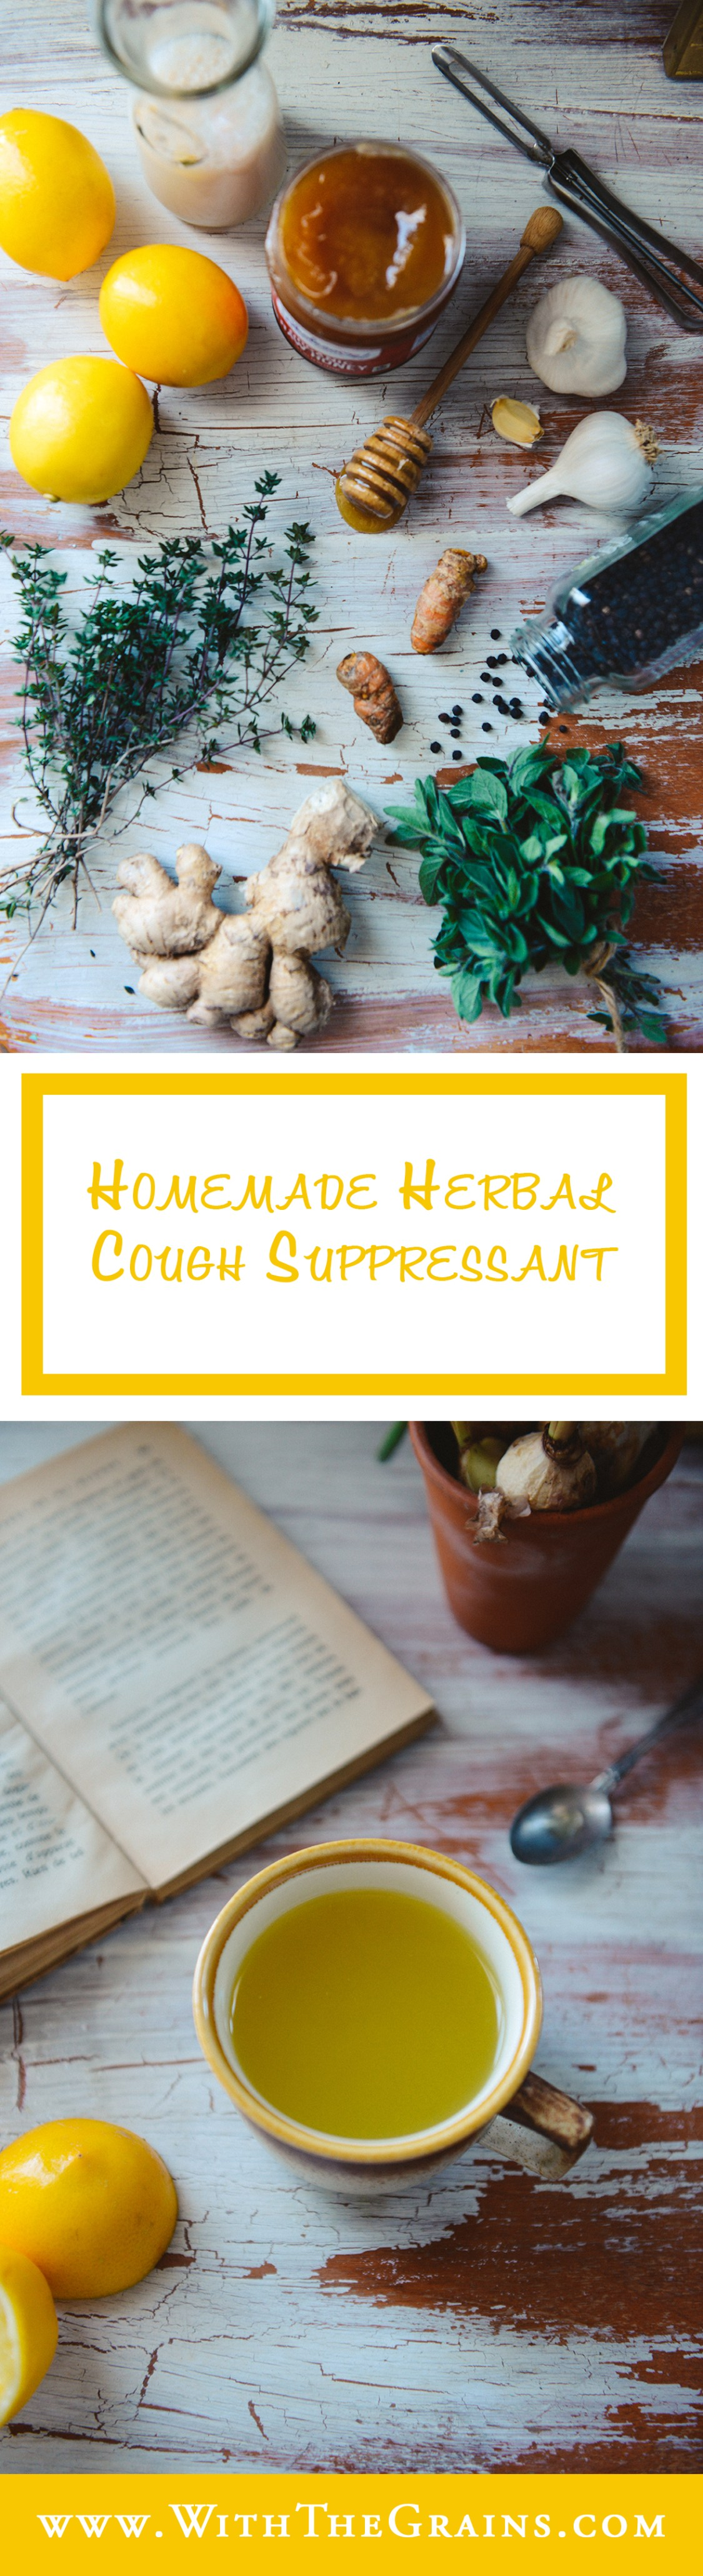 Herbal Cough Suppressant by With The Grains